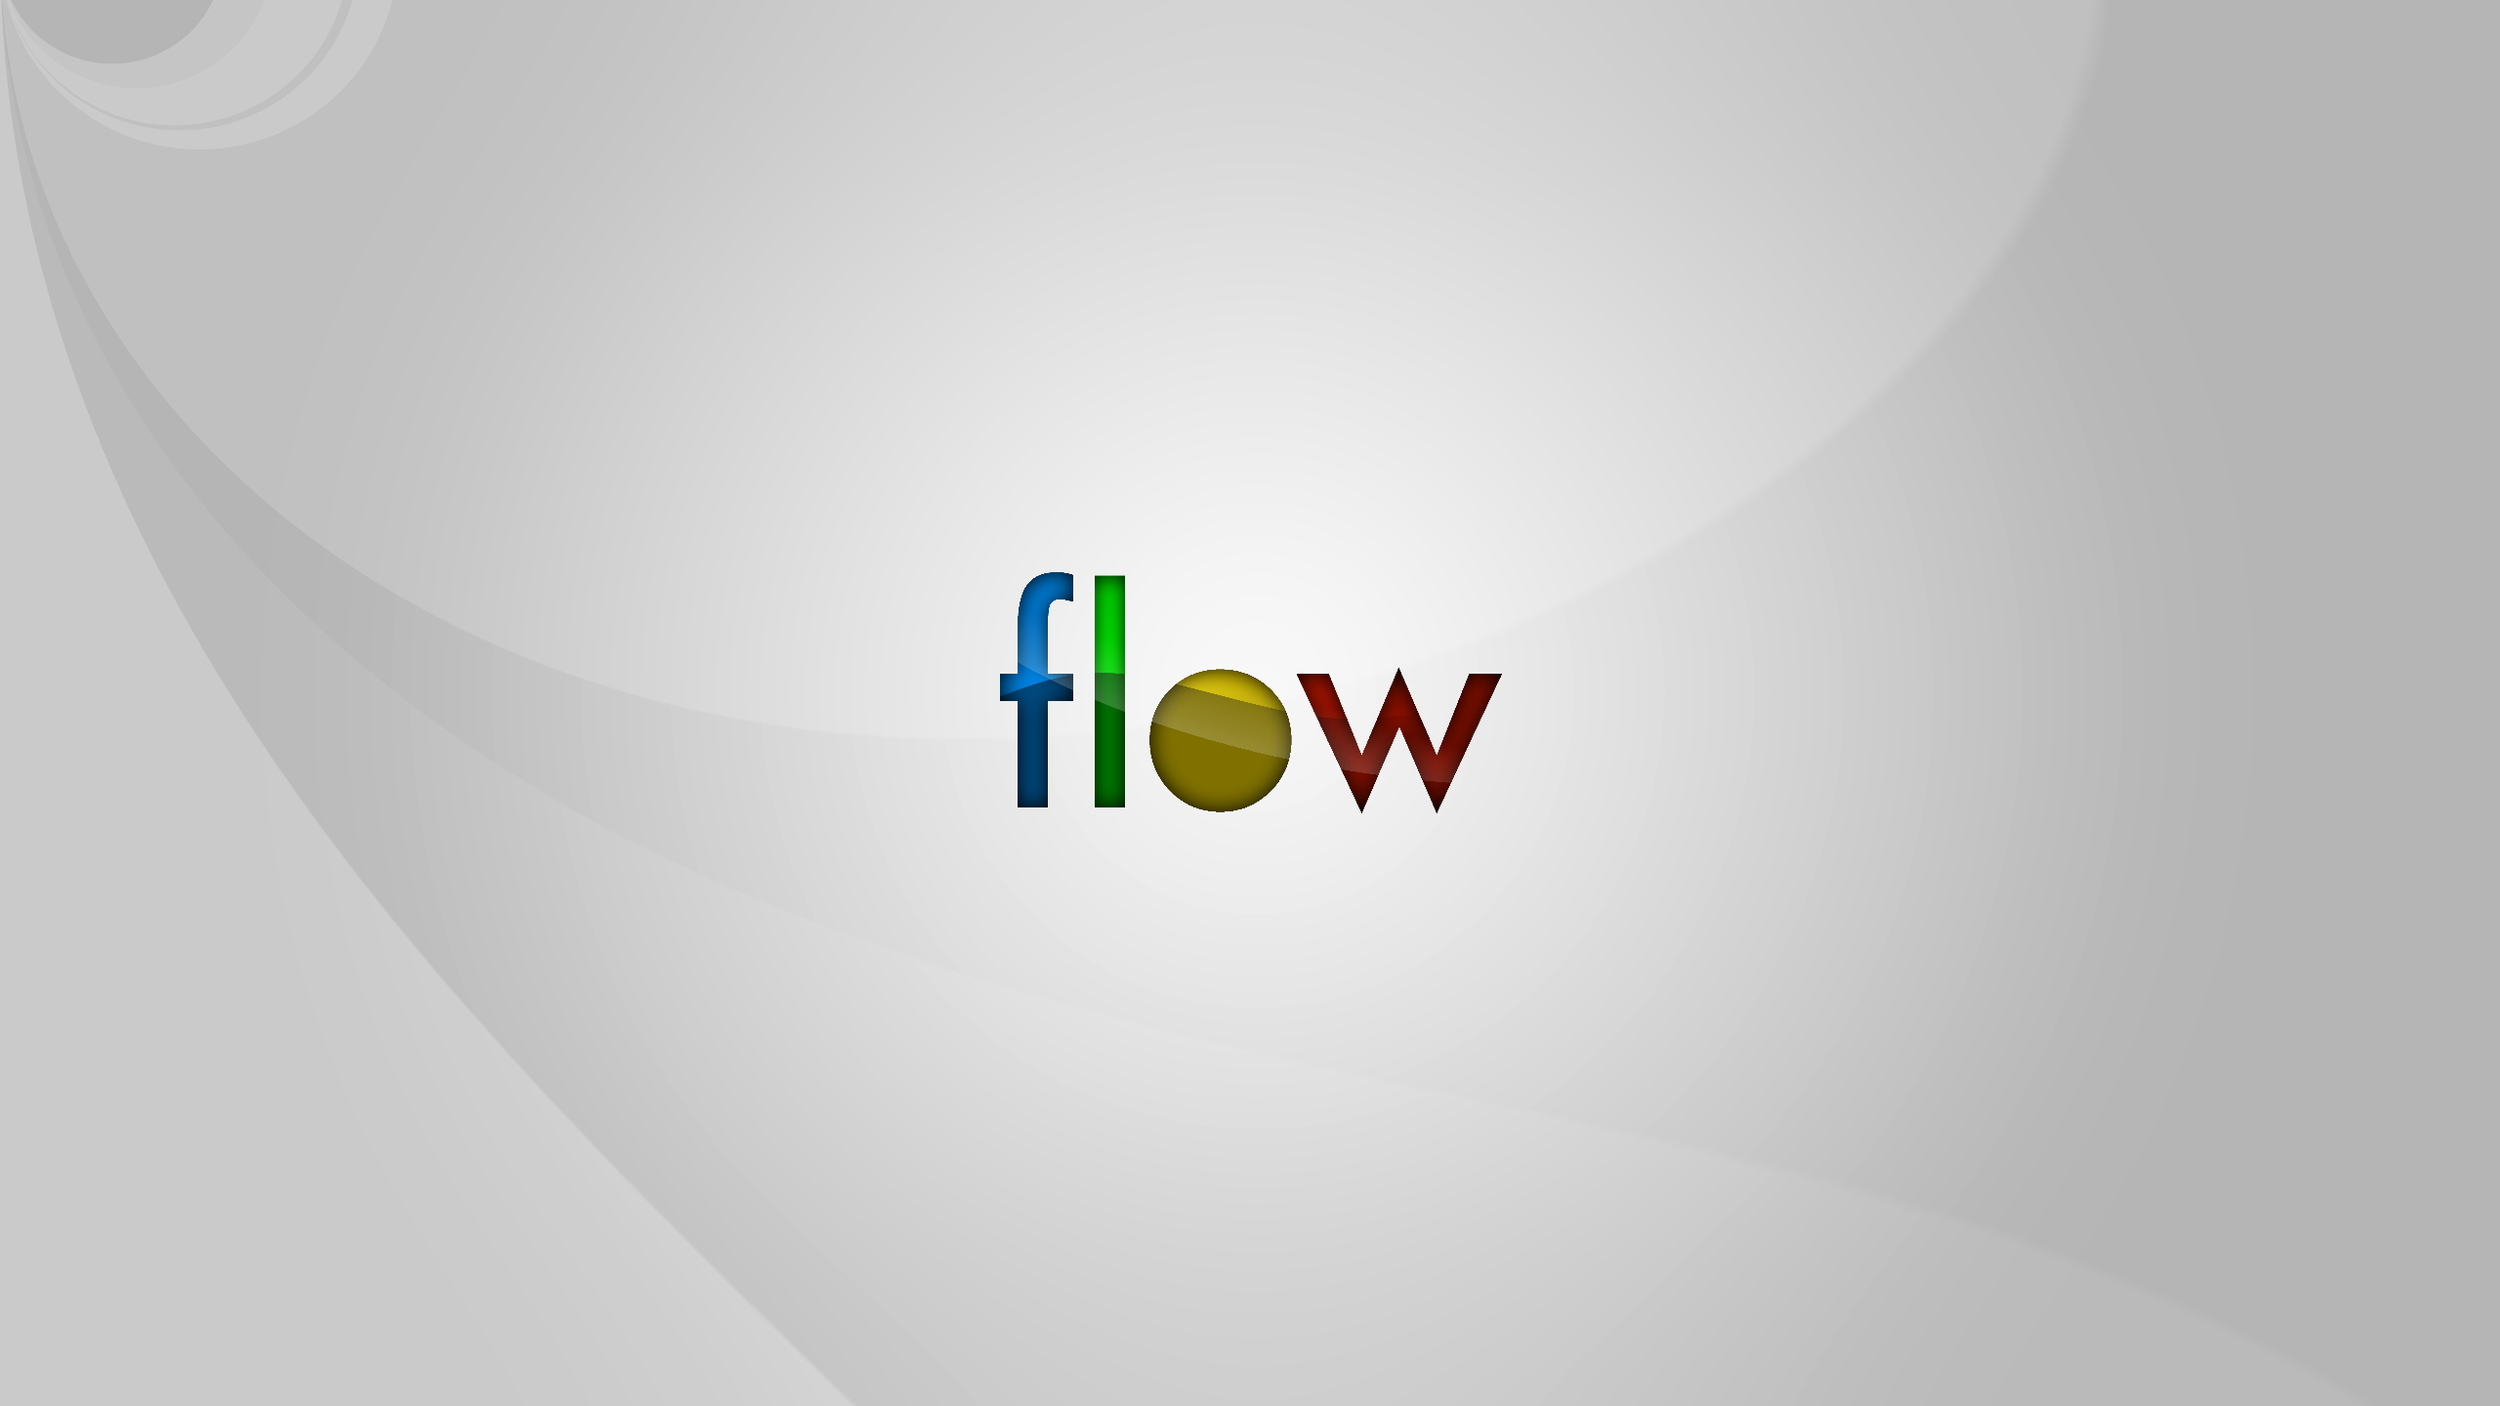 flow background 2.1.png